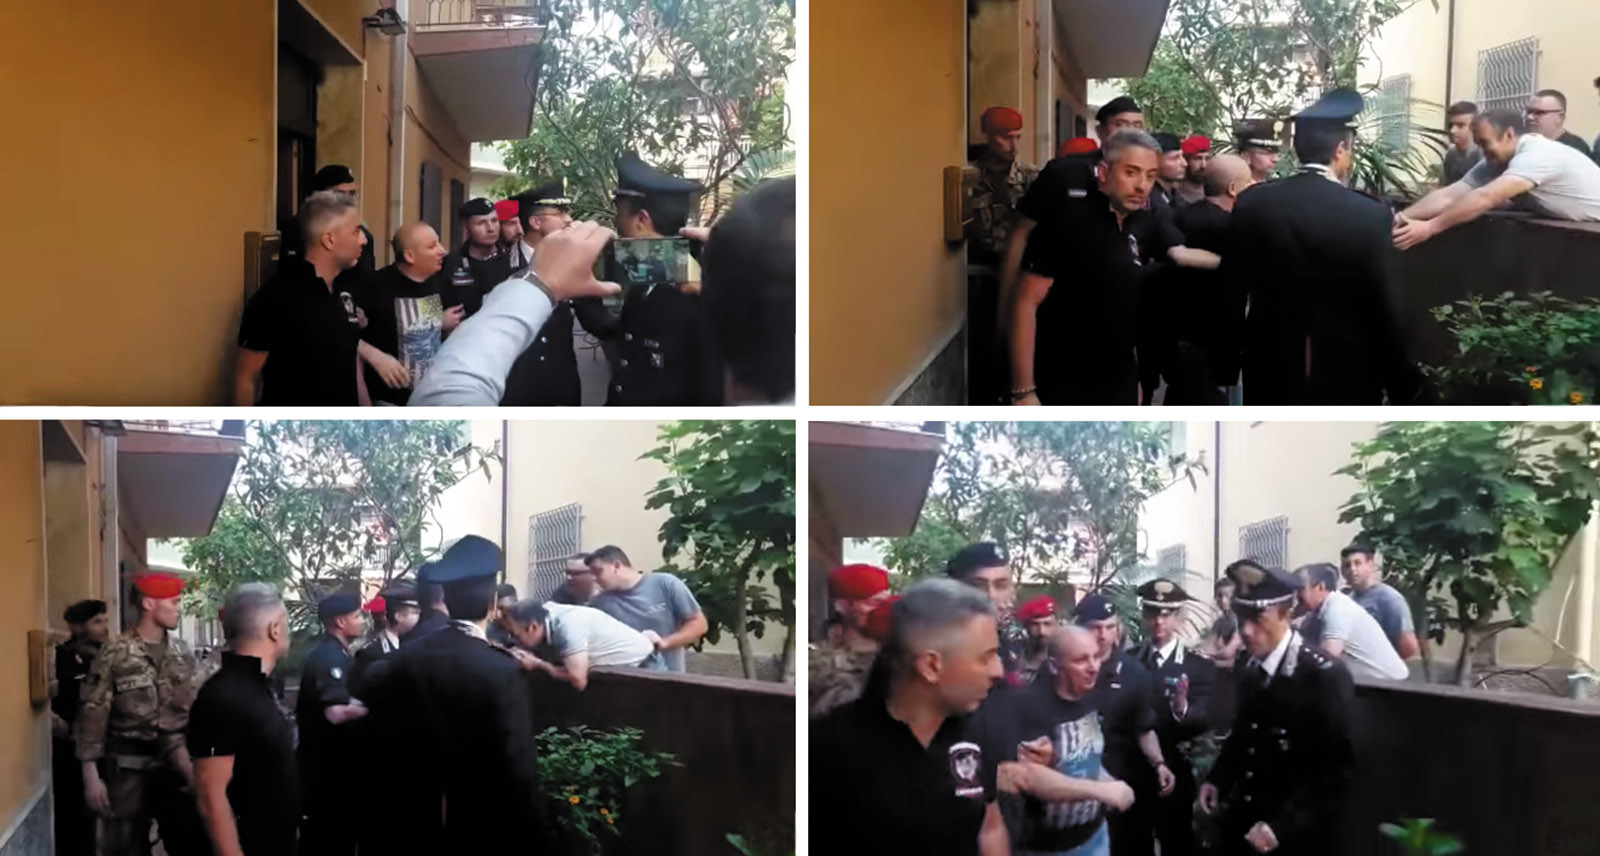 Stills from news footage of 'Ndrangheta boss Giuseppe 'The Goat' Giorgi during his arrest, showing him greeting local men and having his hand kissed in a typical mafia gesture of respect, San Luca, Calabria, June 2017